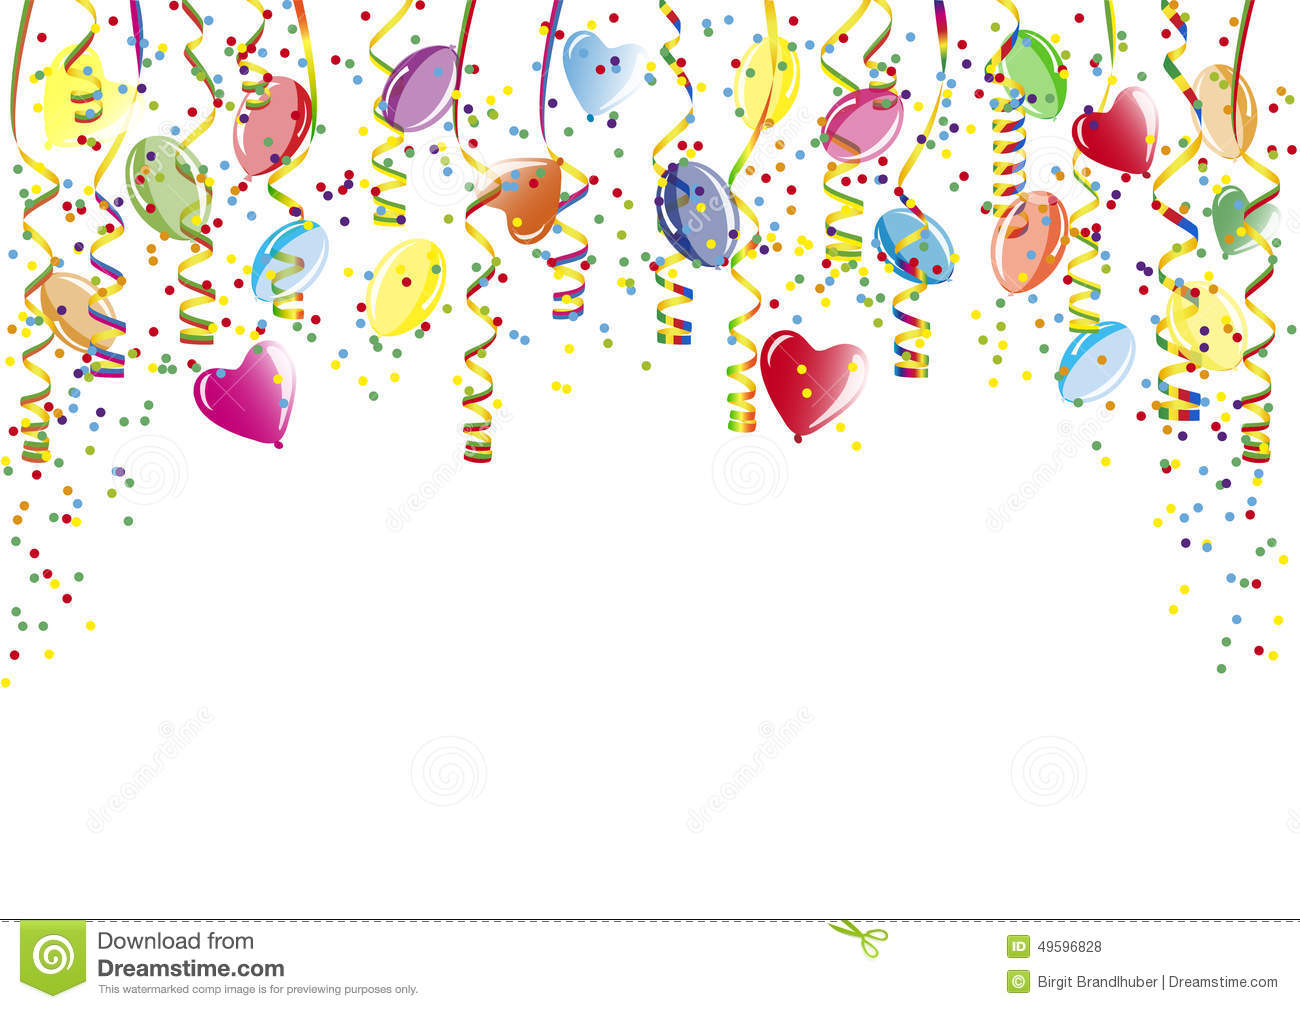 Shower of confetti balloons and paper streamer stock for Balloon and streamer decoration ideas